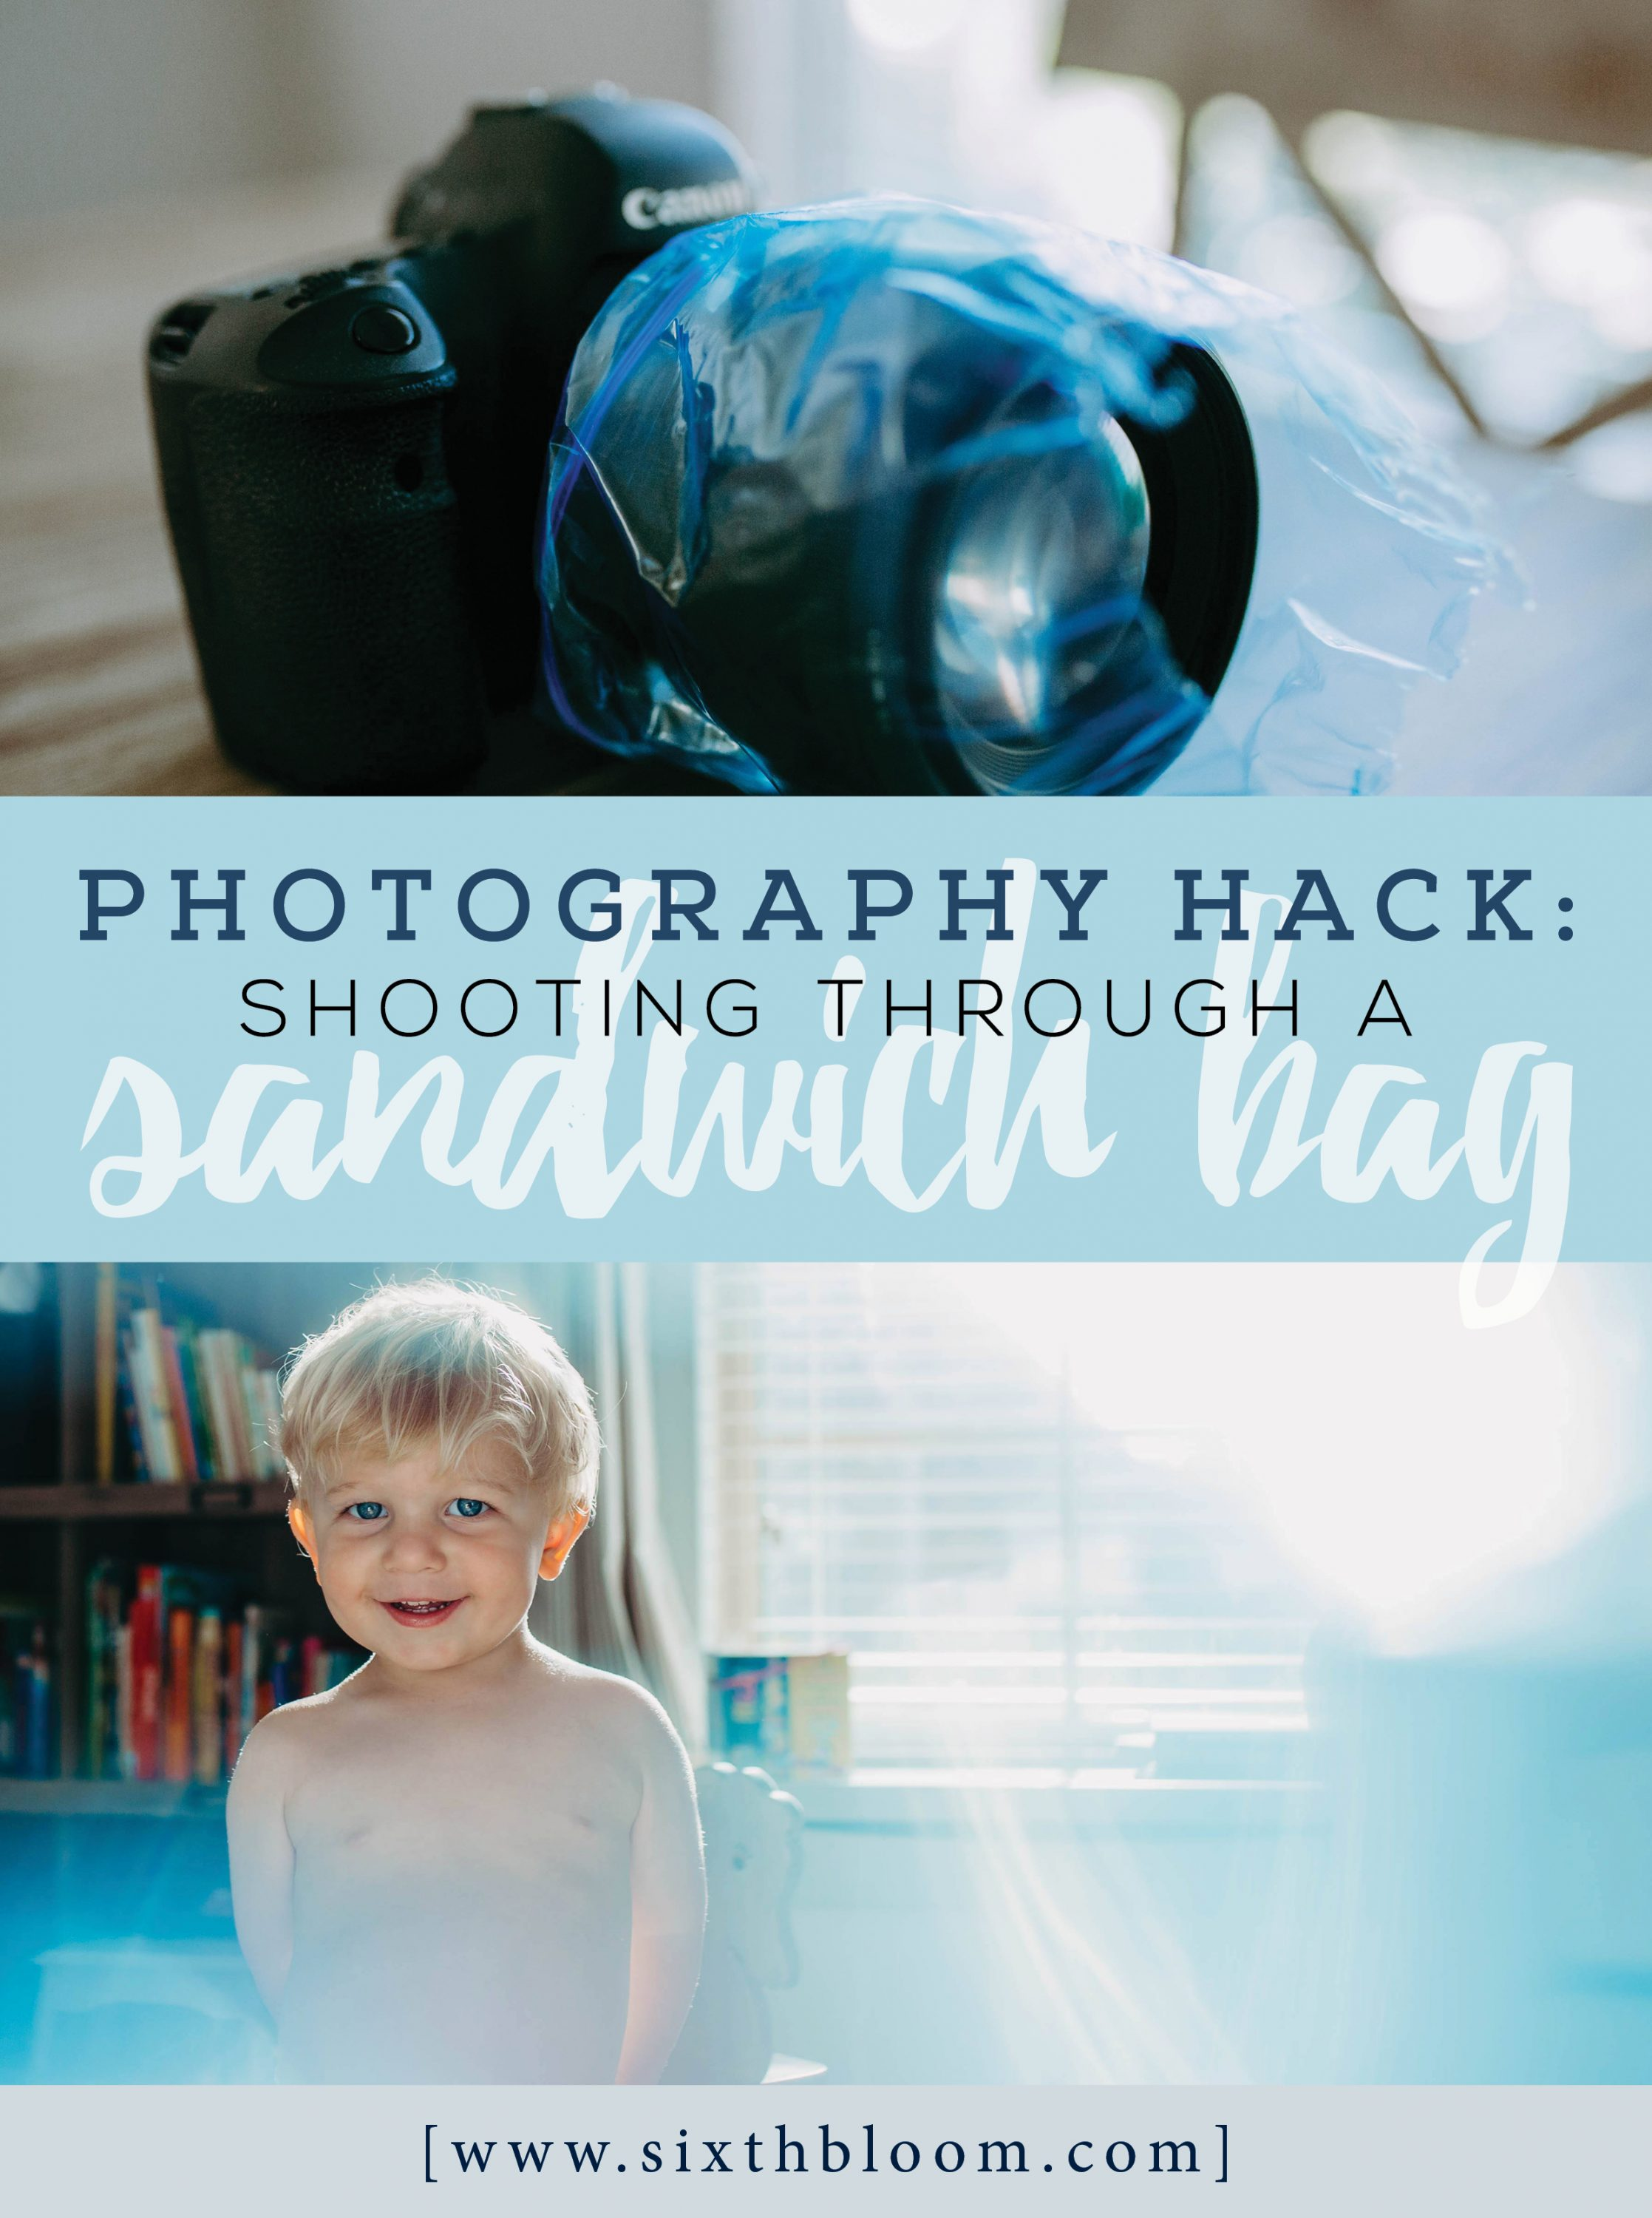 Photography Hack: Shooting Through a Sandwich Bag